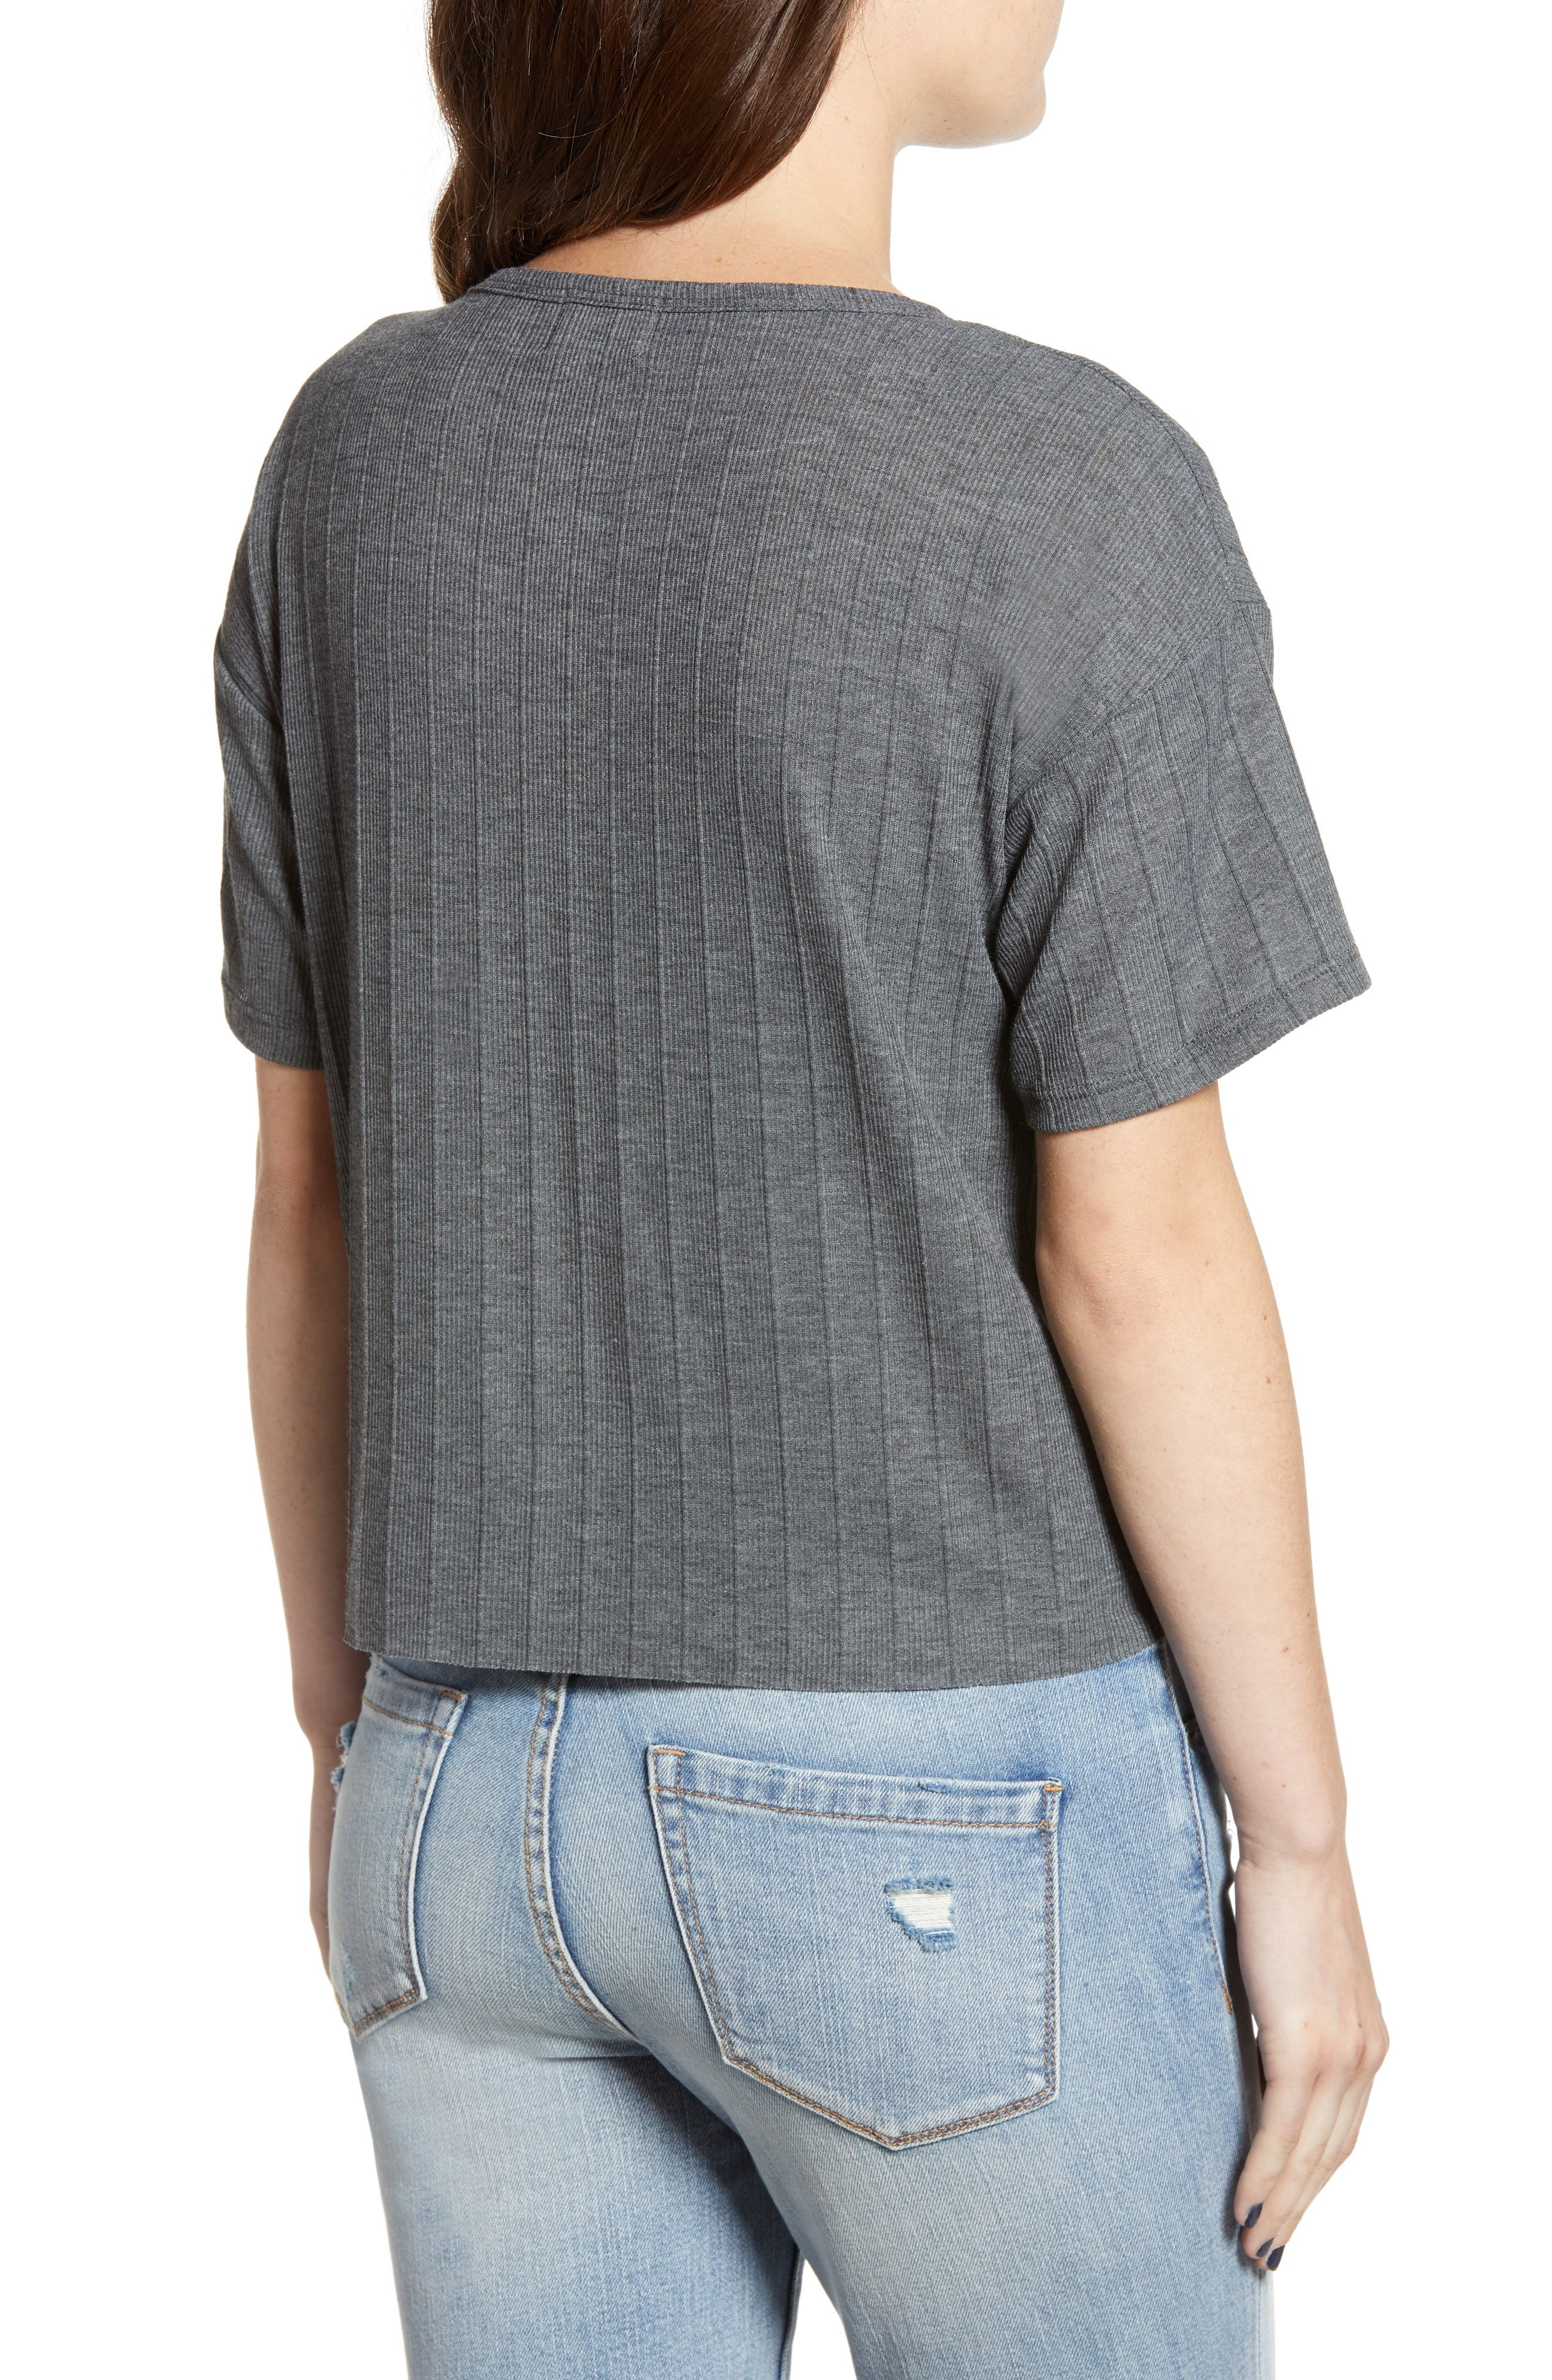 Variegated Rib Knit Tee,                             Alternate thumbnail 2, color,                             CHARCOAL